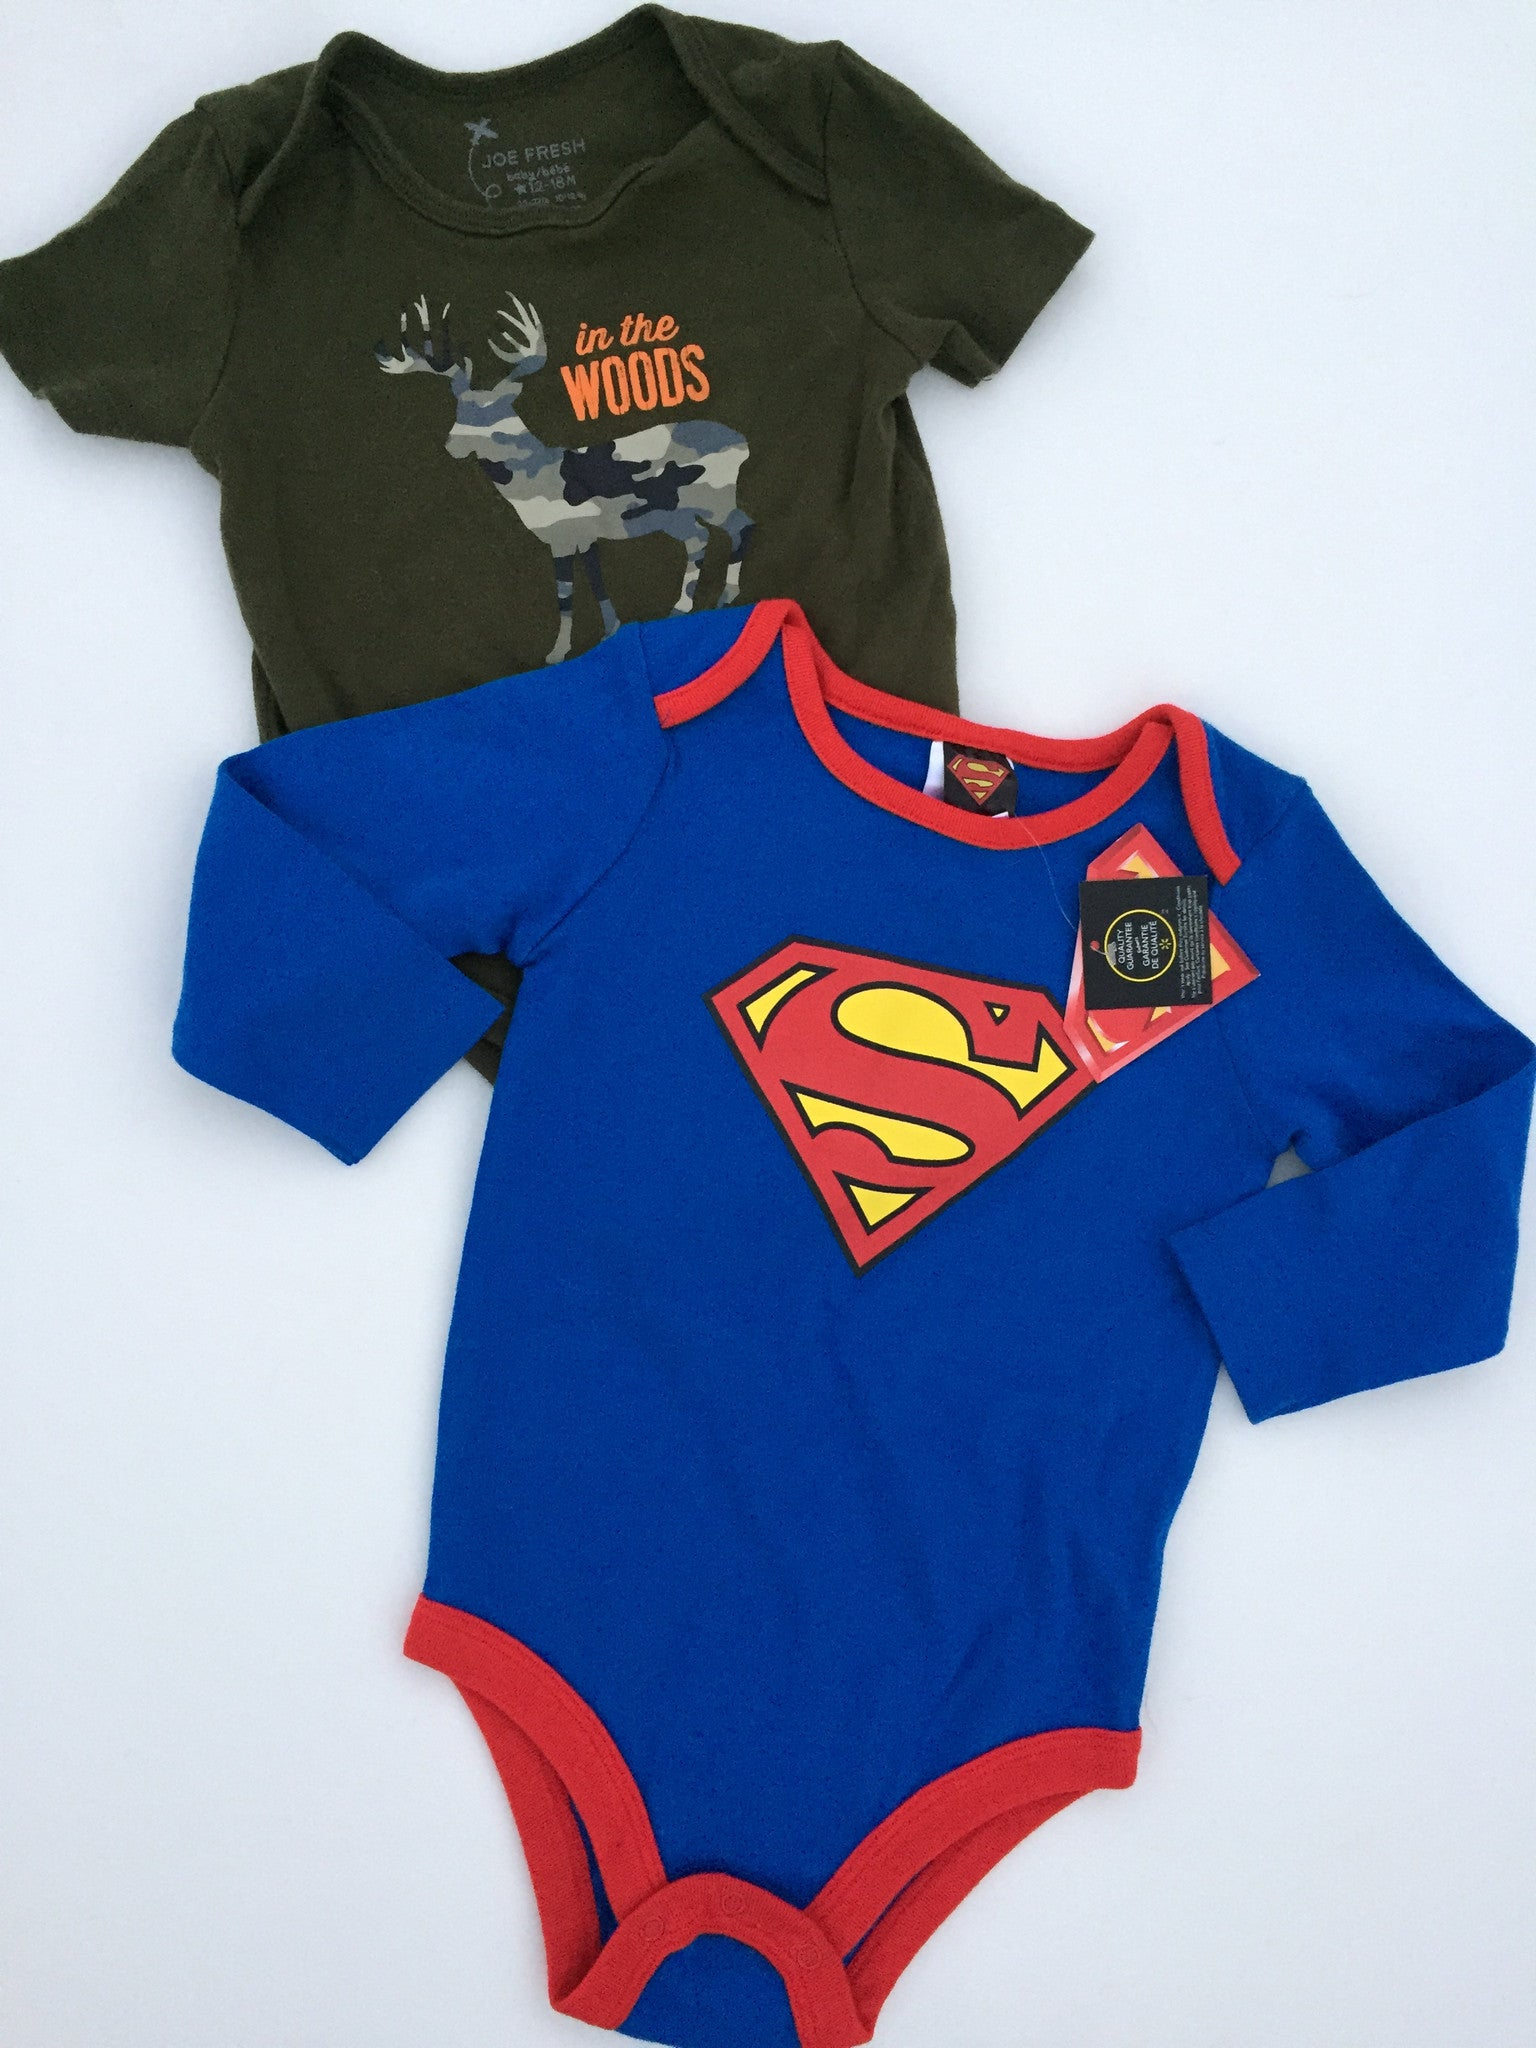 Superman Onesie NWT + Joe Fresh Onesie | 12-18M